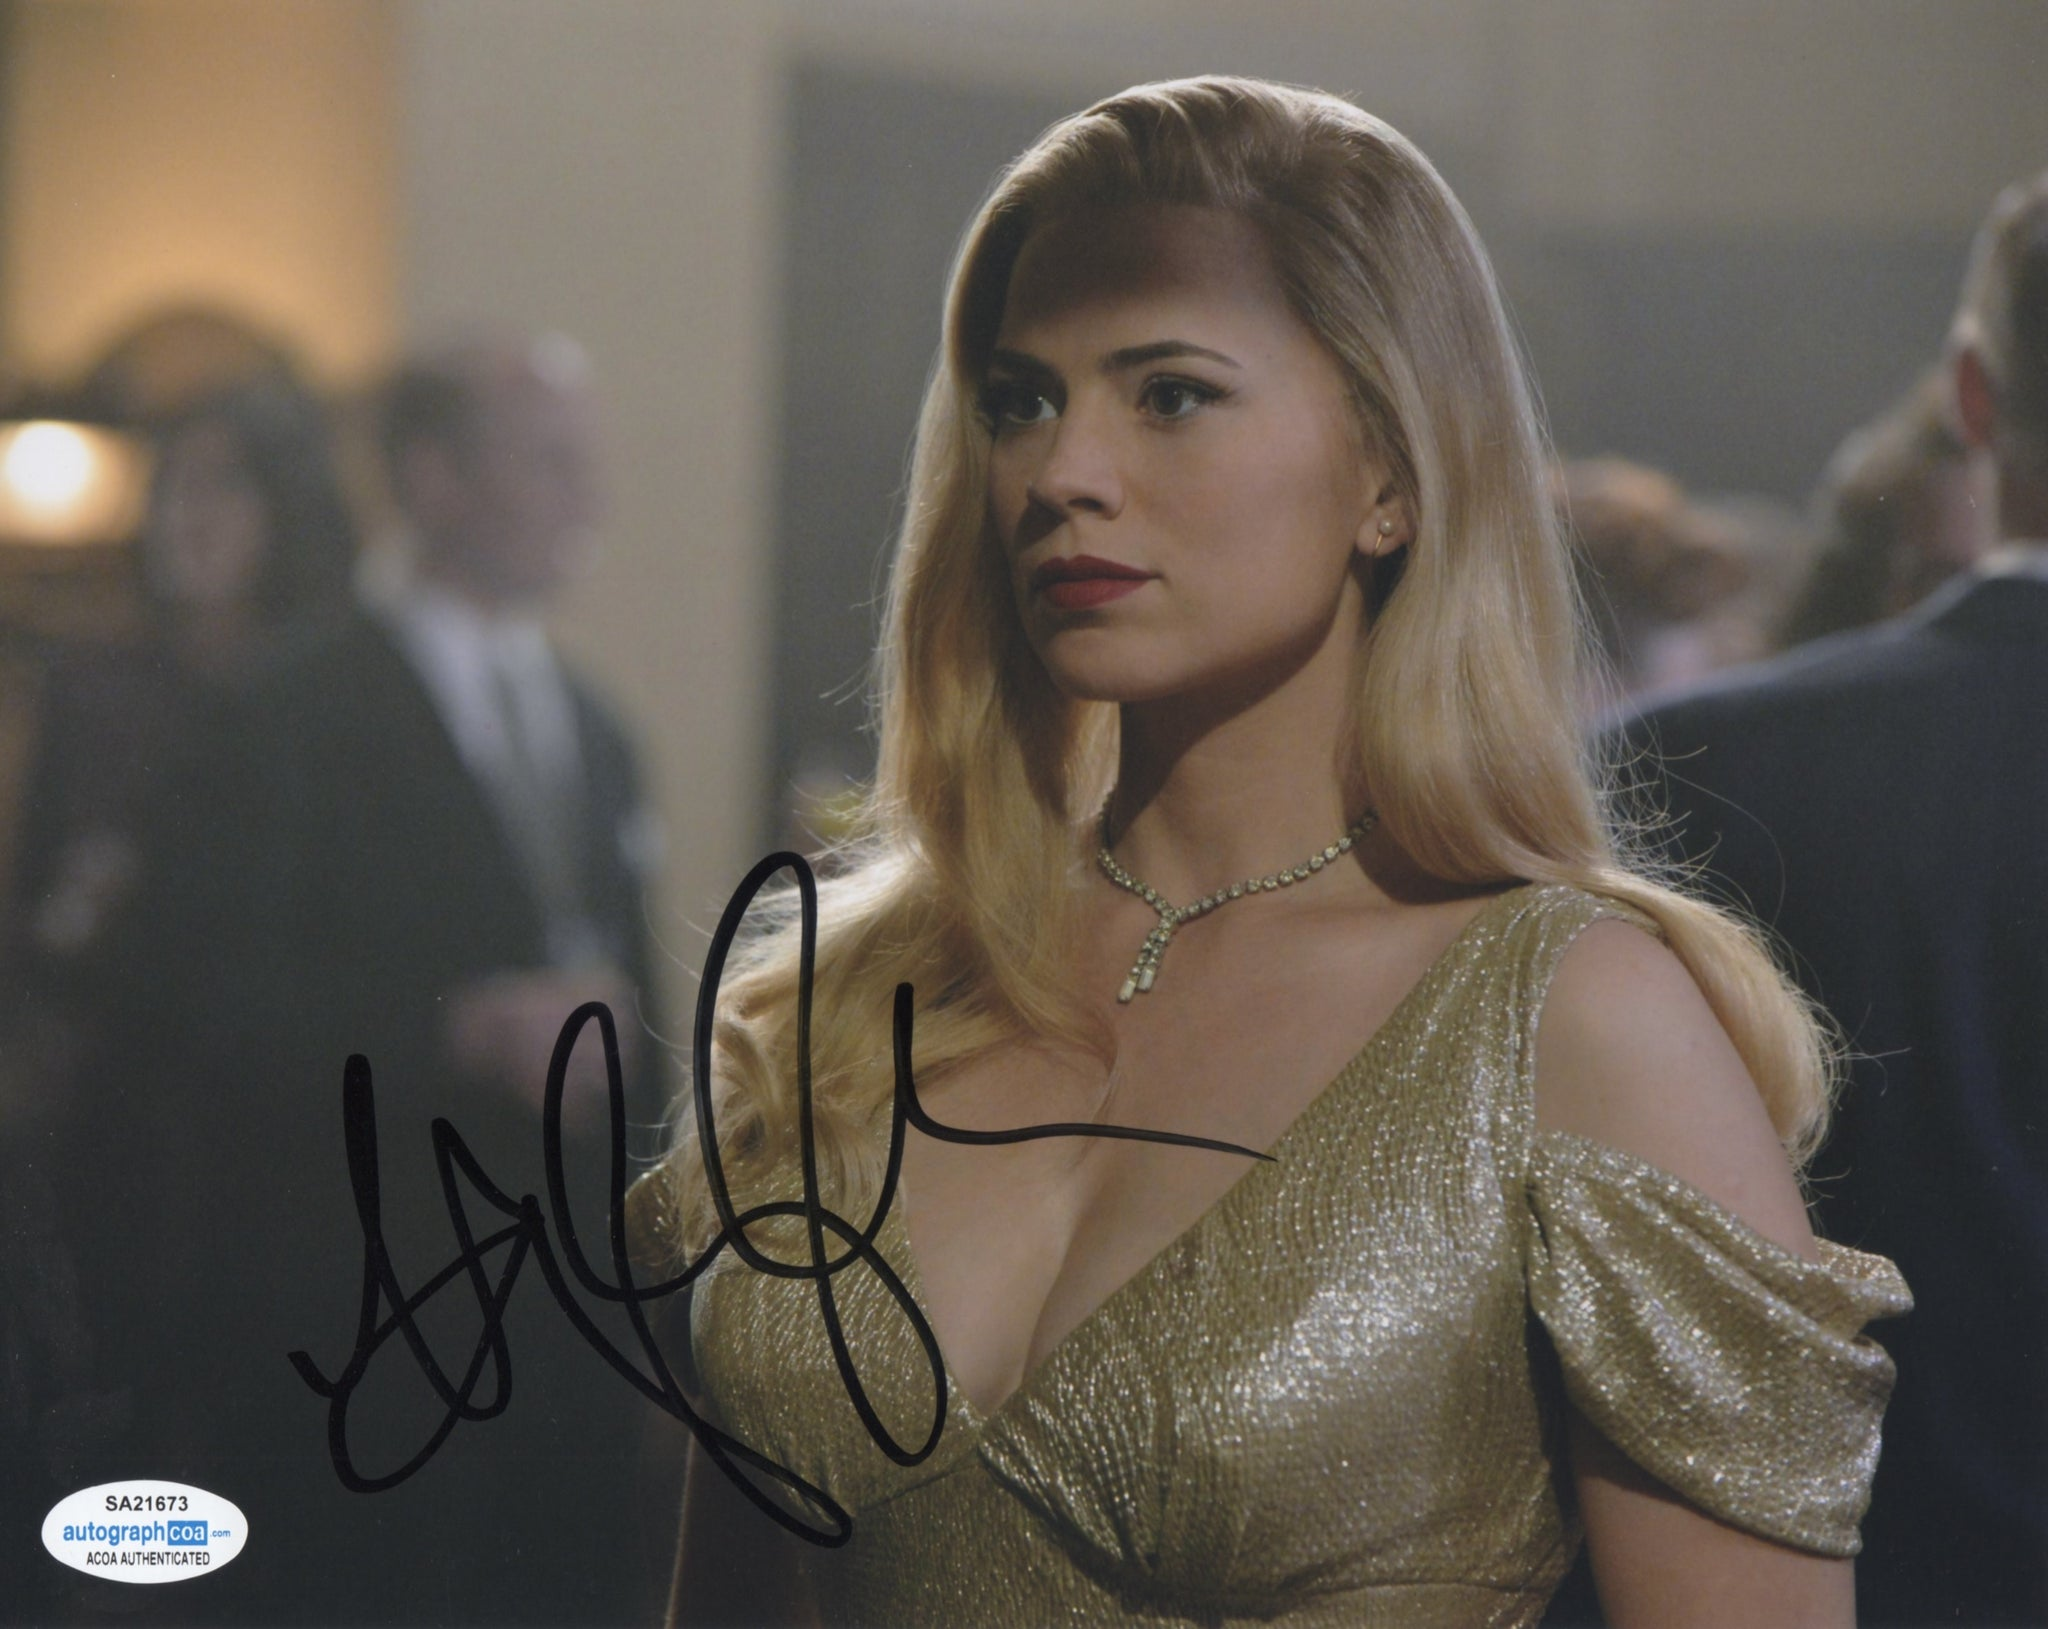 Hayley Atwell Agent Carter Sexy Signed Autograph 8x10 ACOA Photo #4